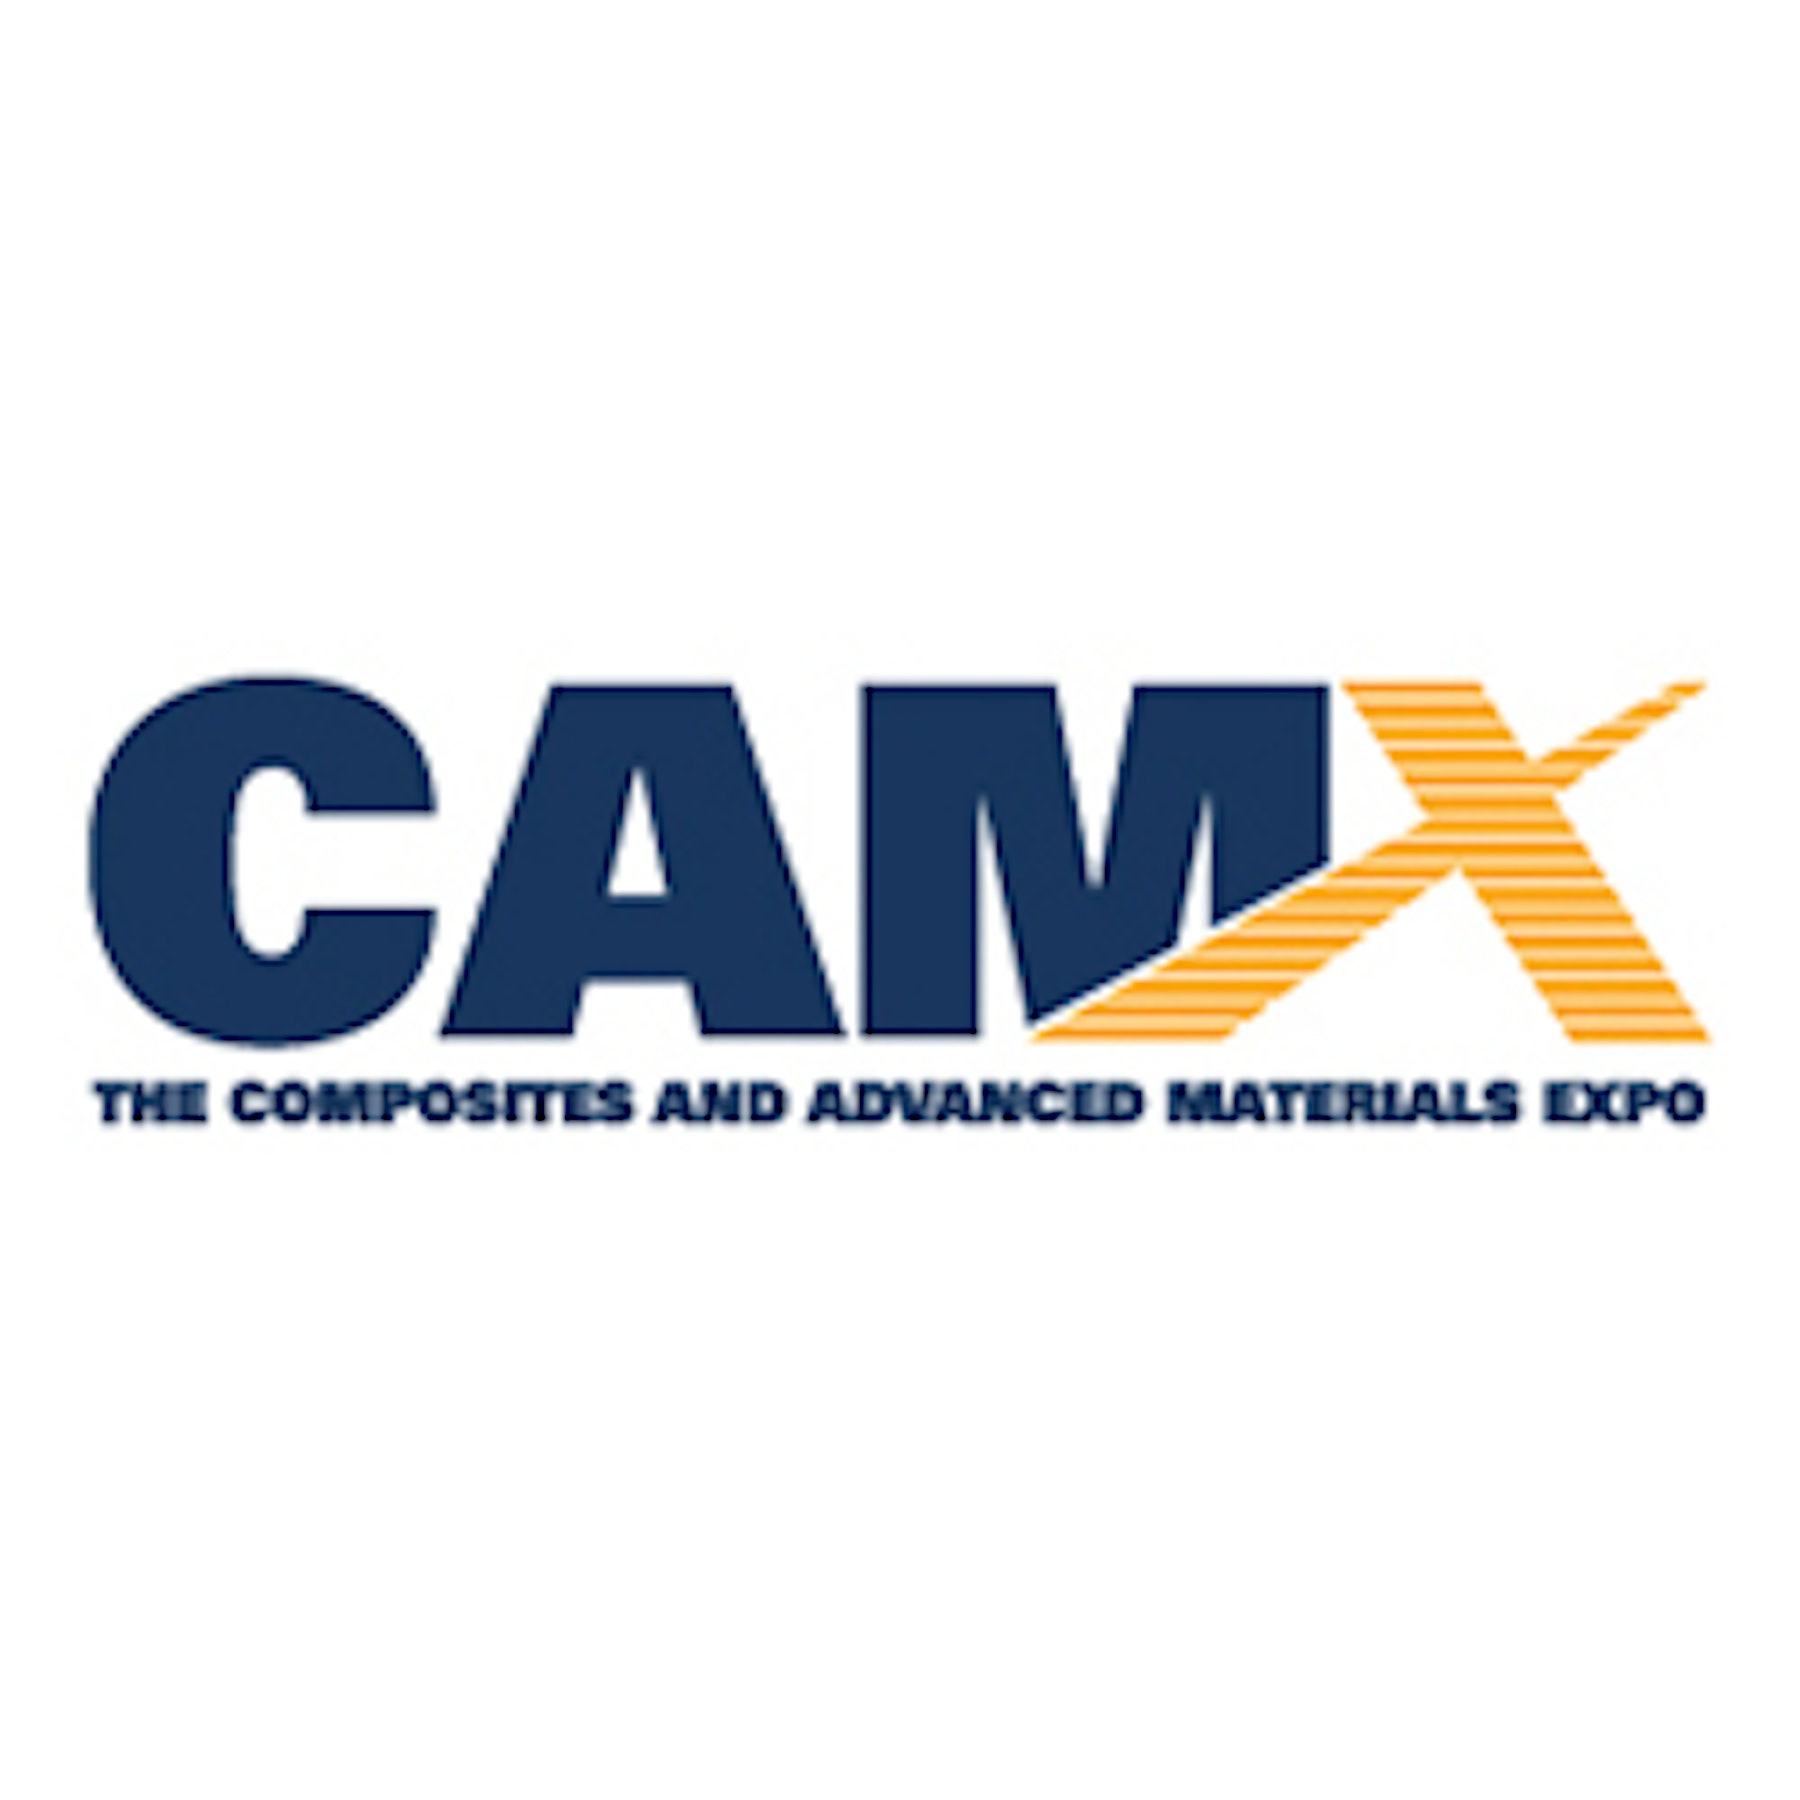 The Composites and Advanced Materials Expo Logo